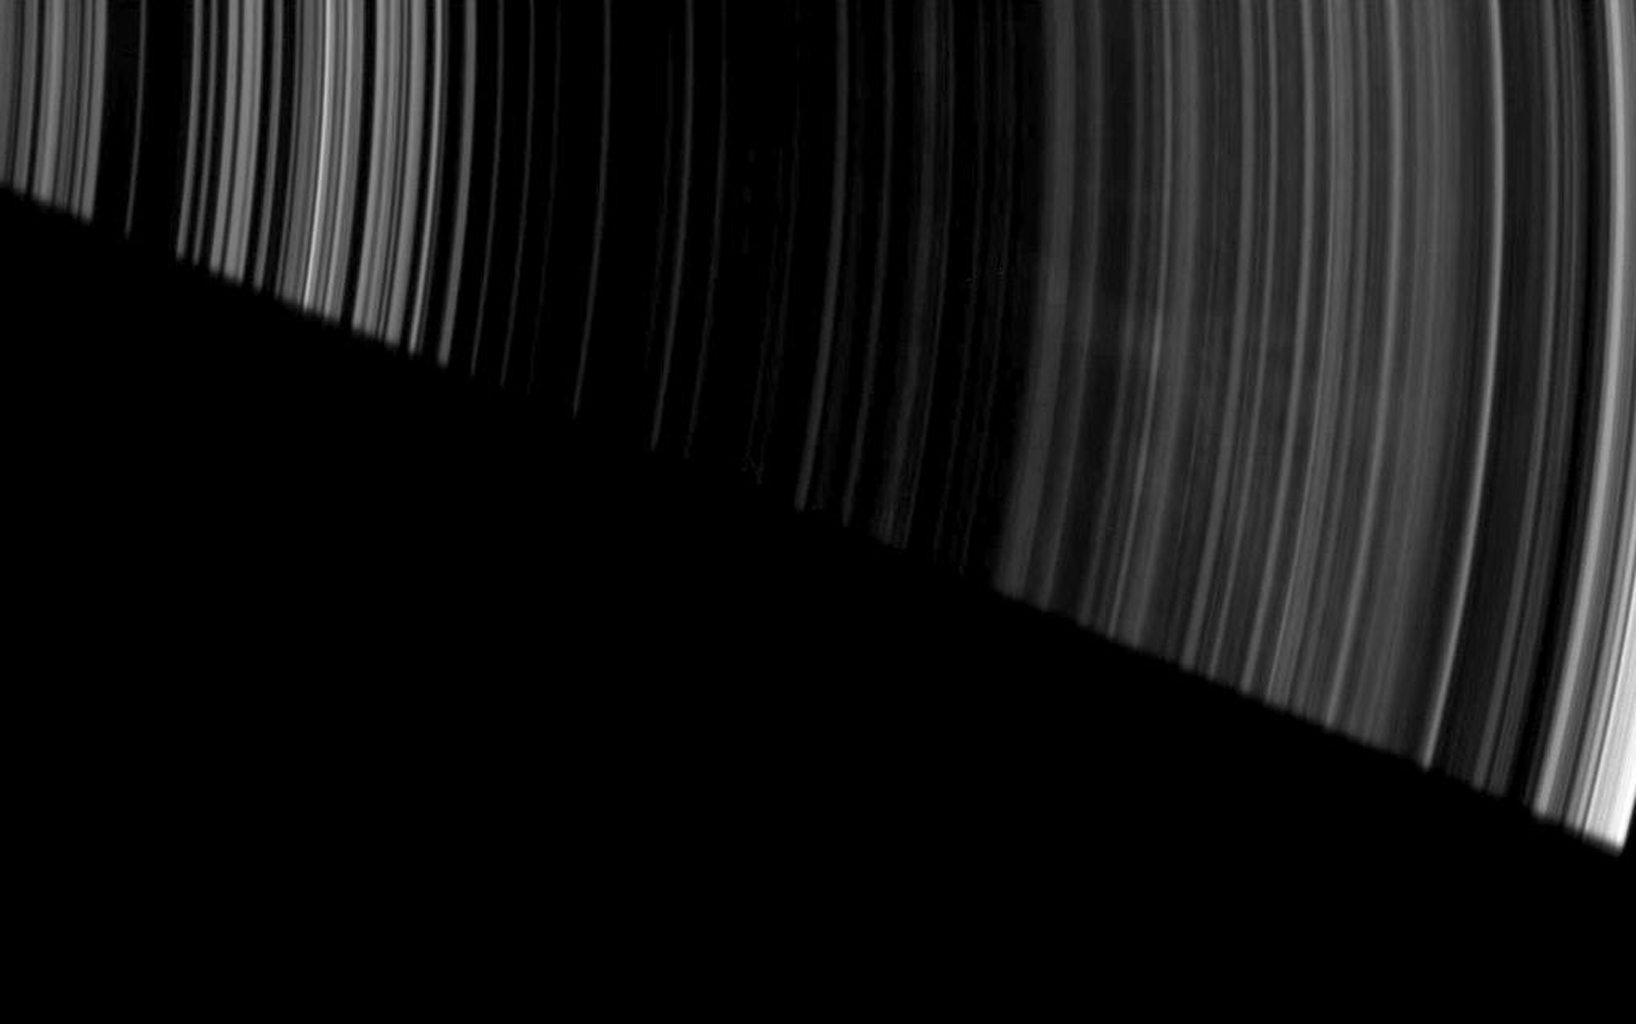 Faint, ghostly spokes dapple the dark side of Saturn's A ring as the planet's shadow makes a sharp diagonal cut across this image from NASA's Cassini spacecraft.